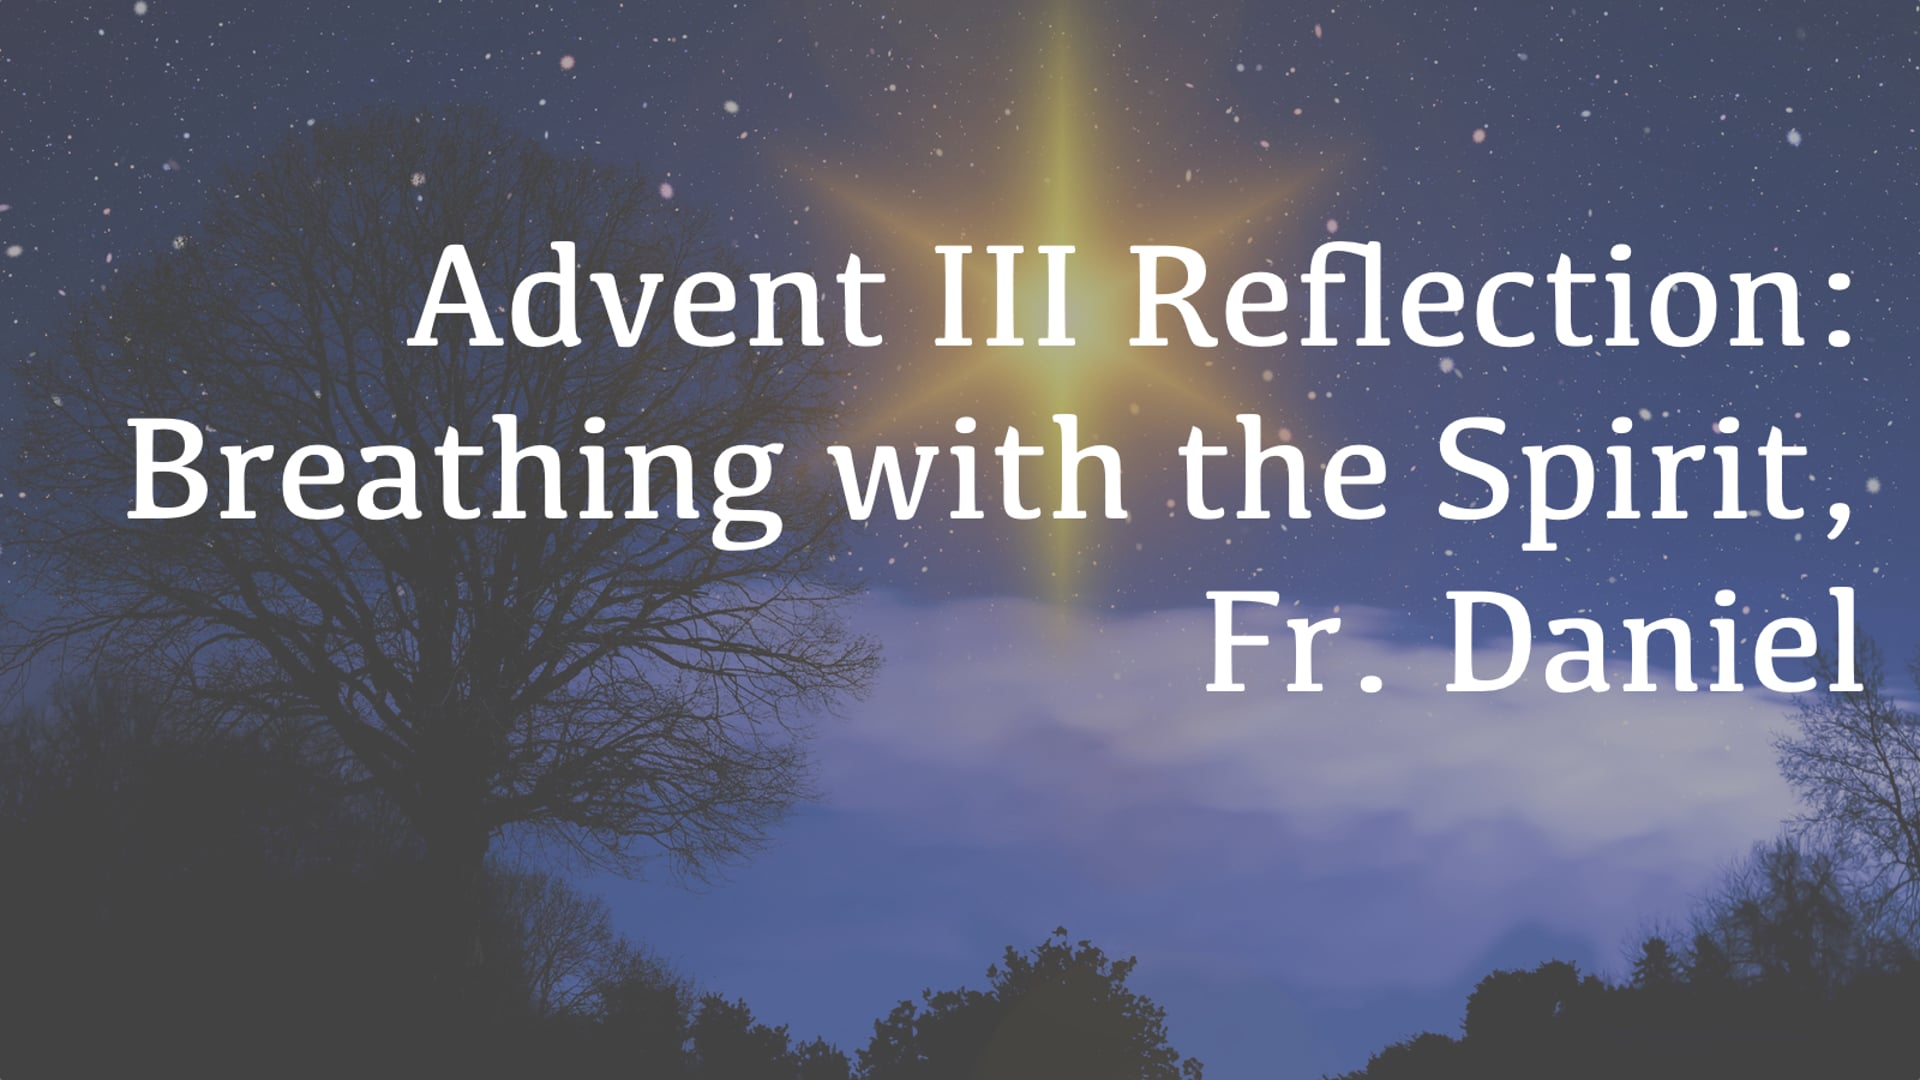 Advent Reflection 3: Breathing with the Spirit, Fr. Daniel